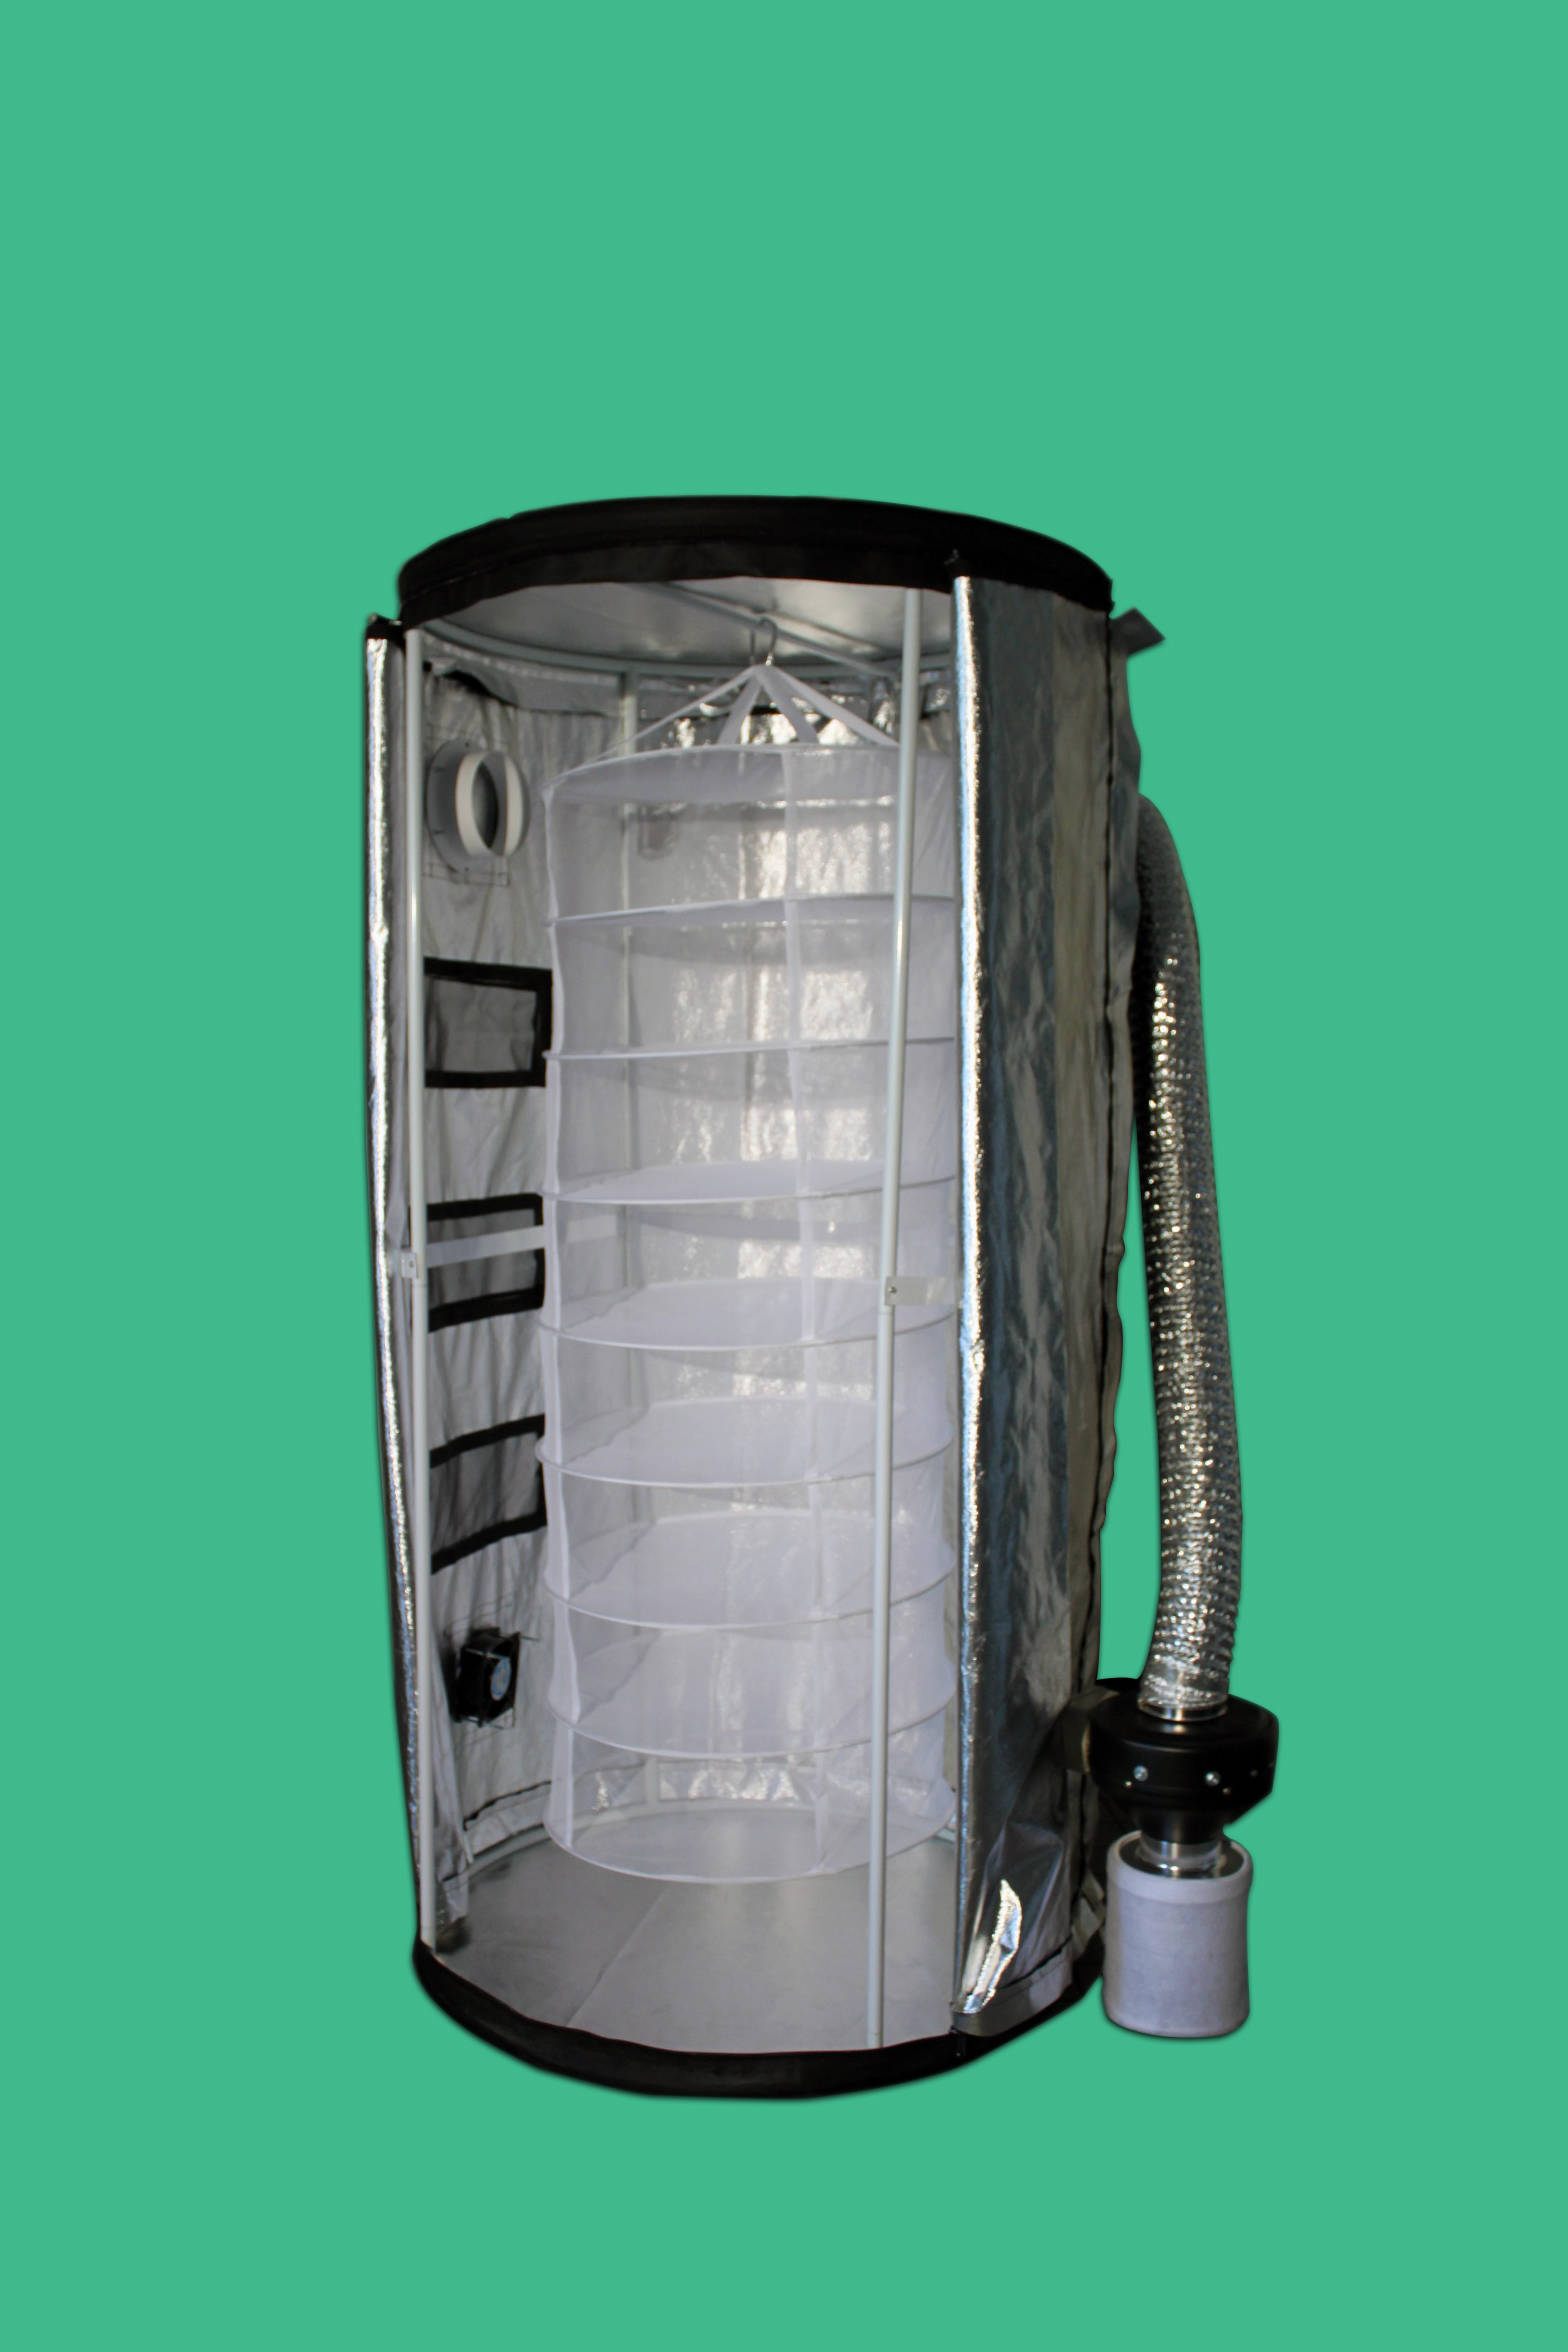 Grow Tube Hydroponic Starter Kit From Hydroponics Group